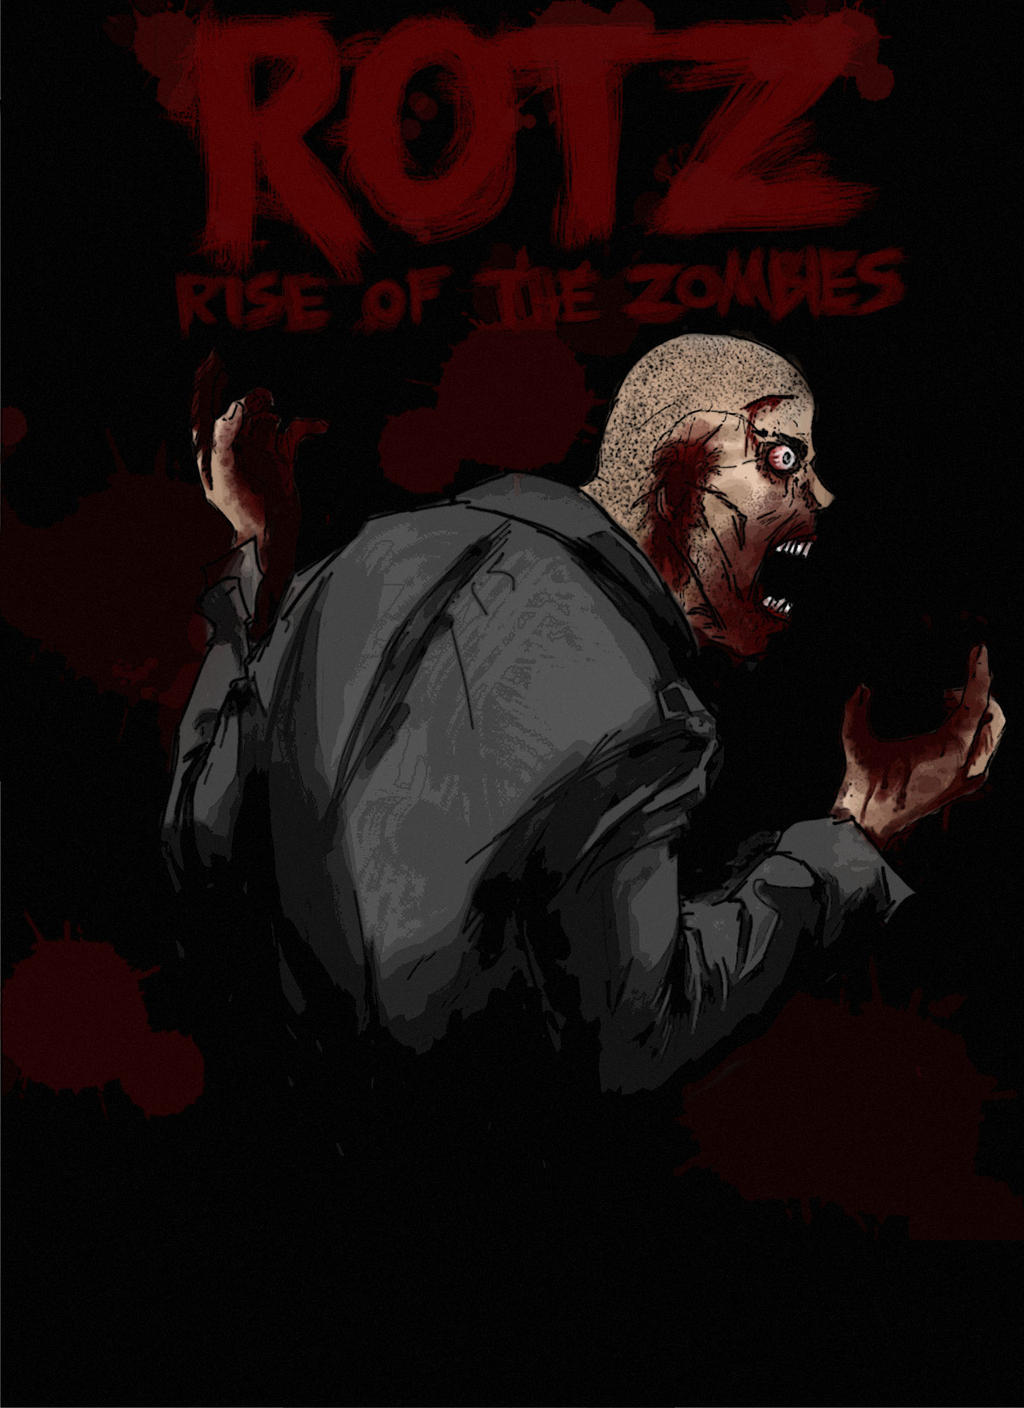 rise_of_the_zombies_by_machinerule-d68gz